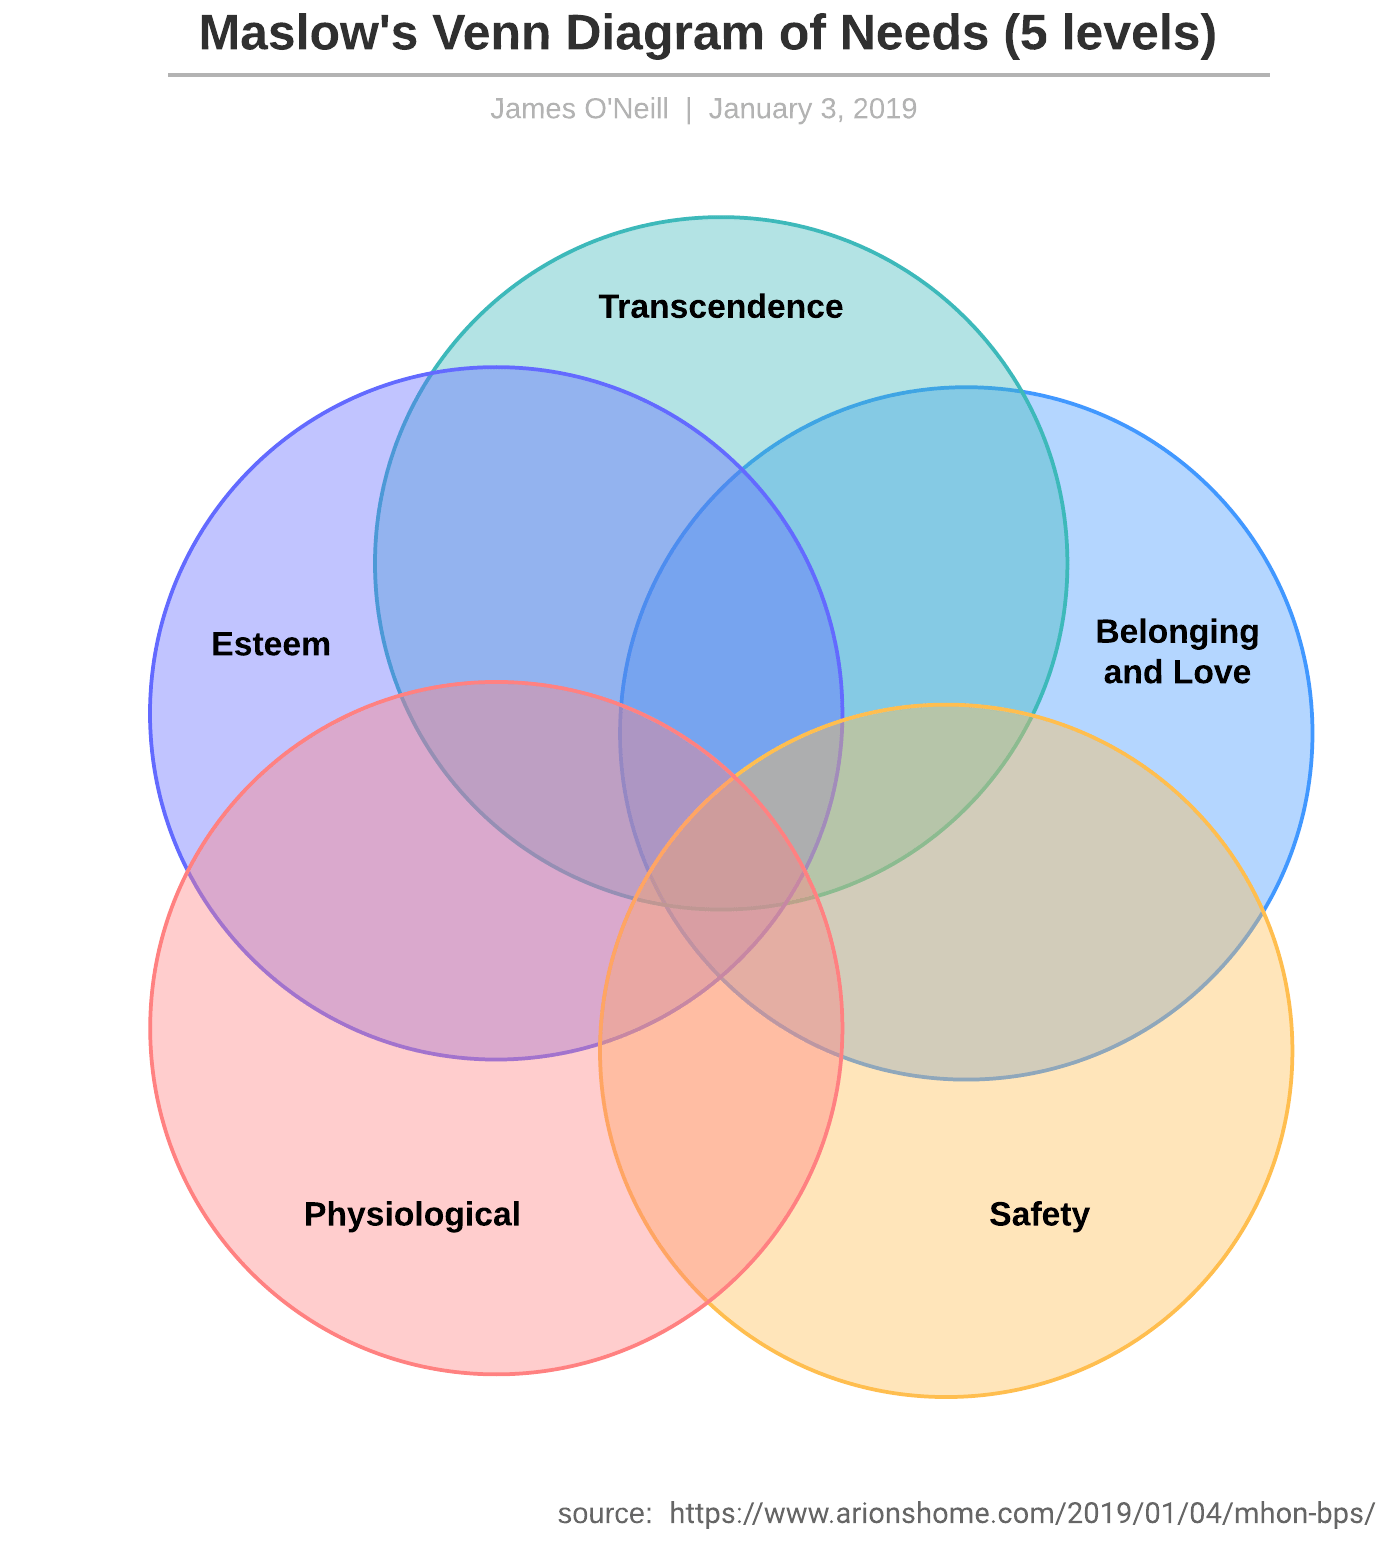 Maslow's Venn Diagram of Needs (5 levels)